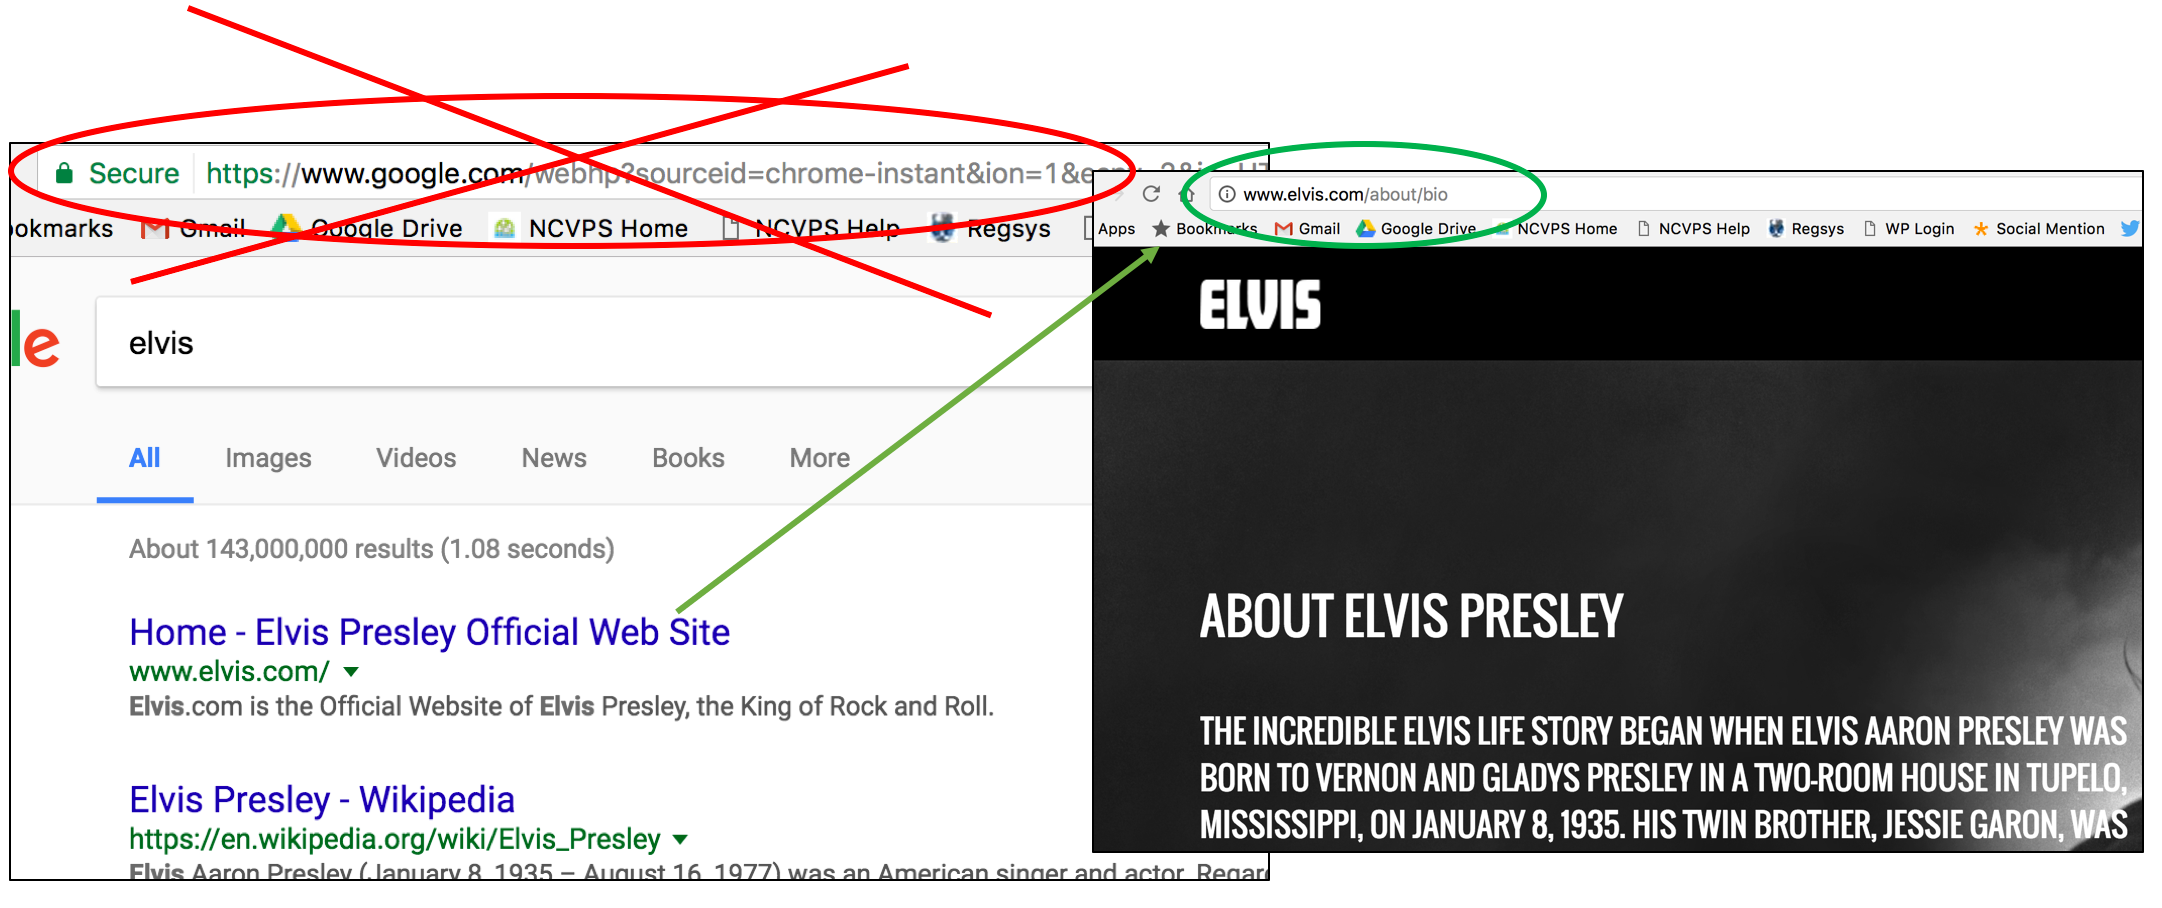 Don't use google.com as your source. Use the link in the actual article.